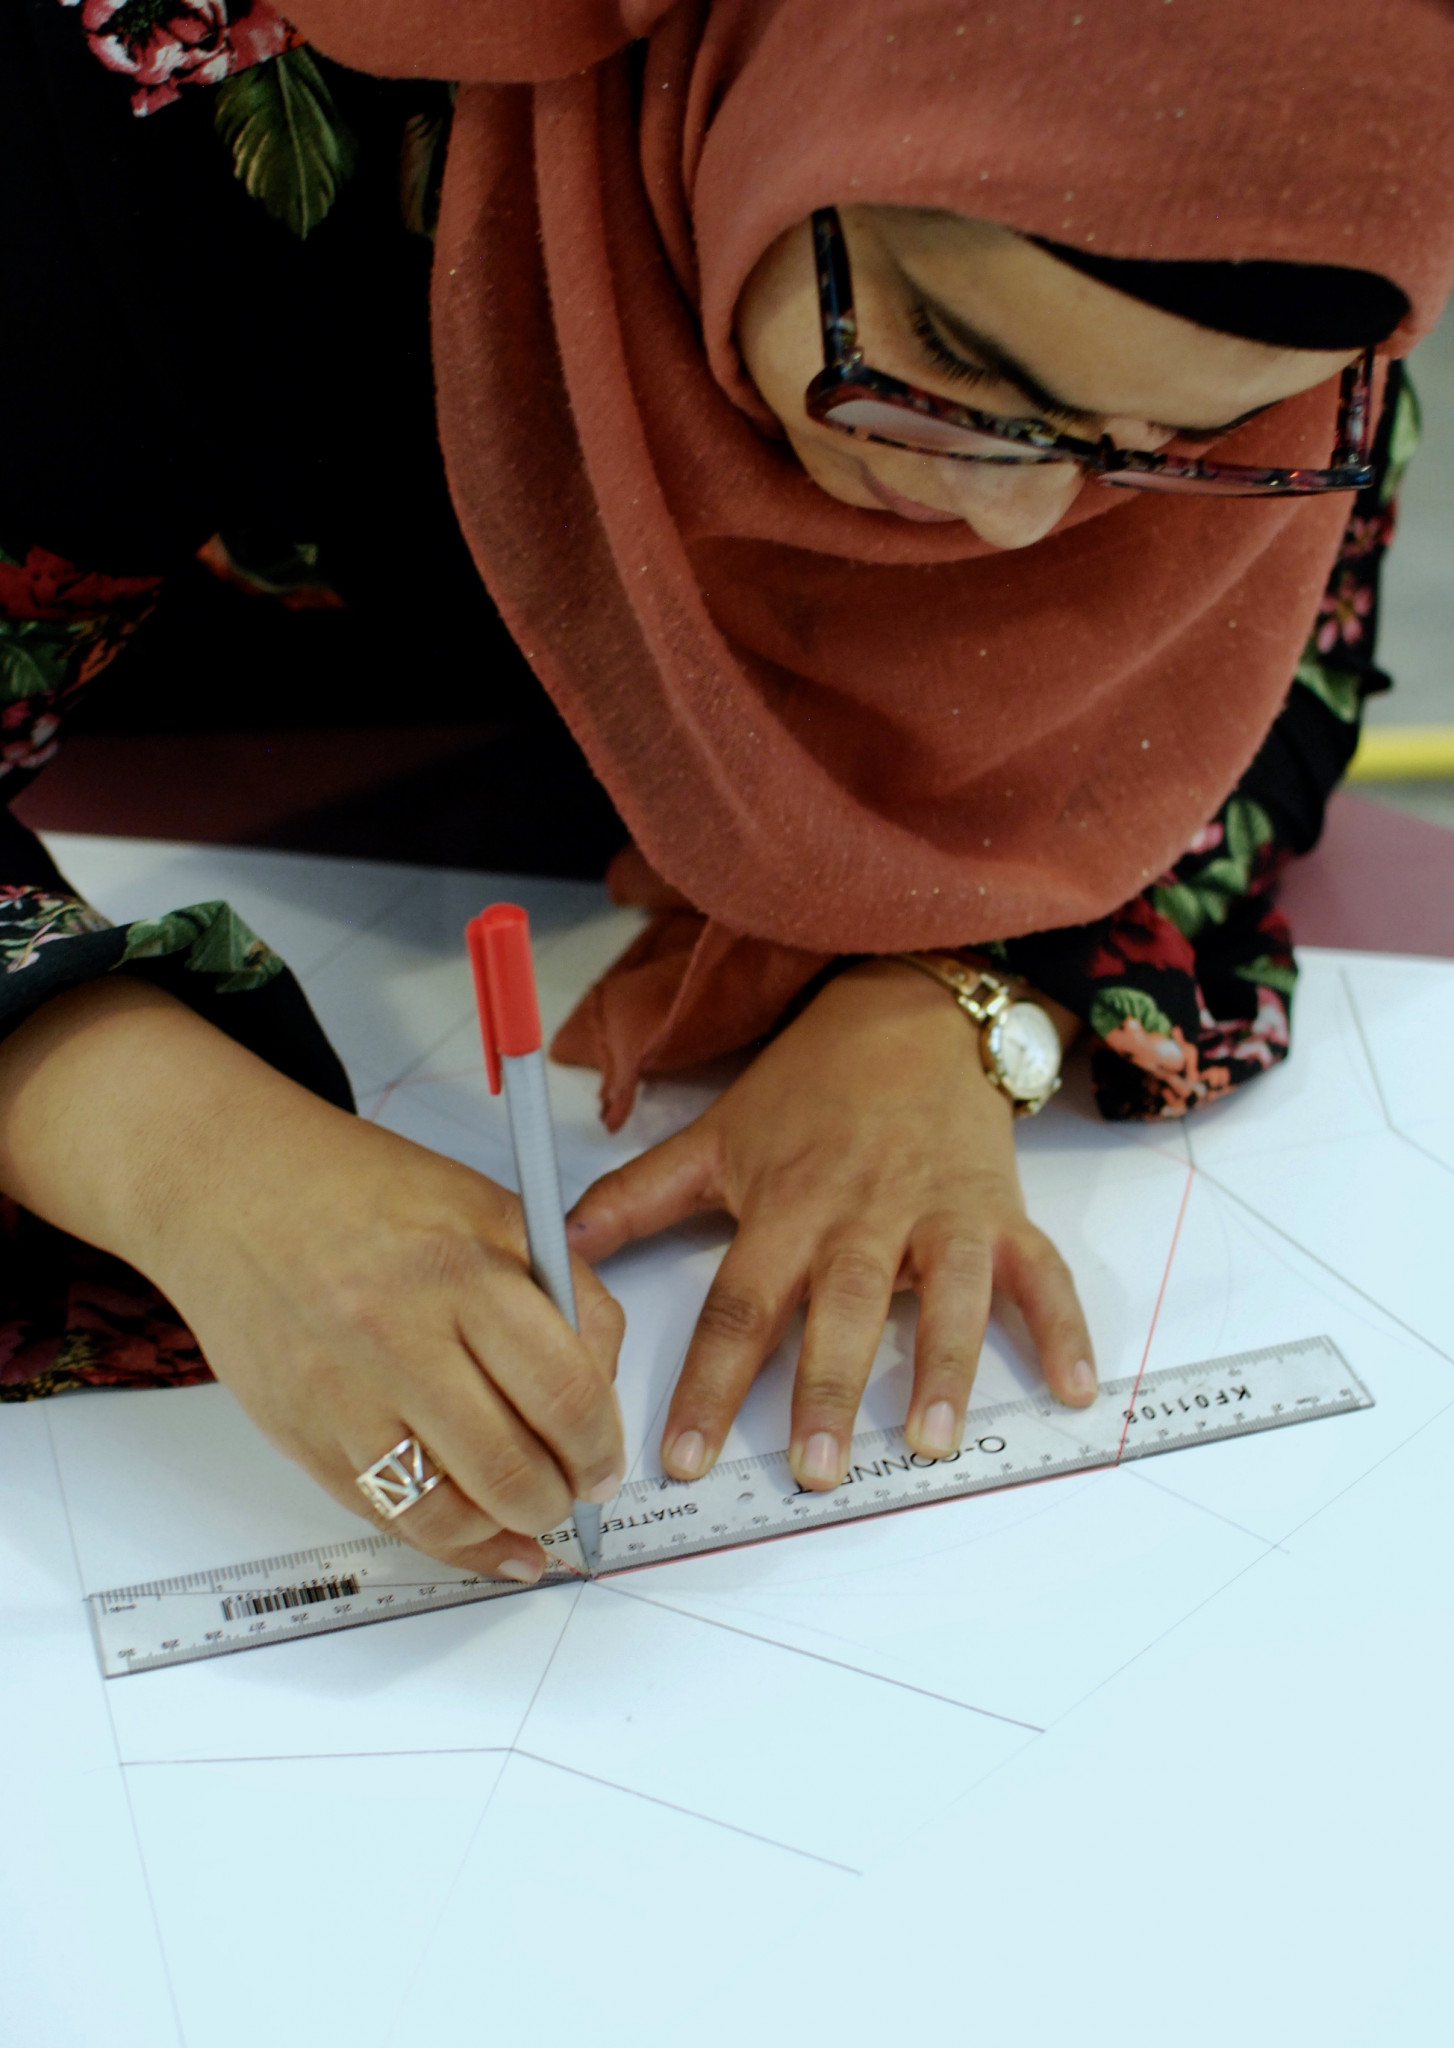 A photo of woman drawing using a ruler